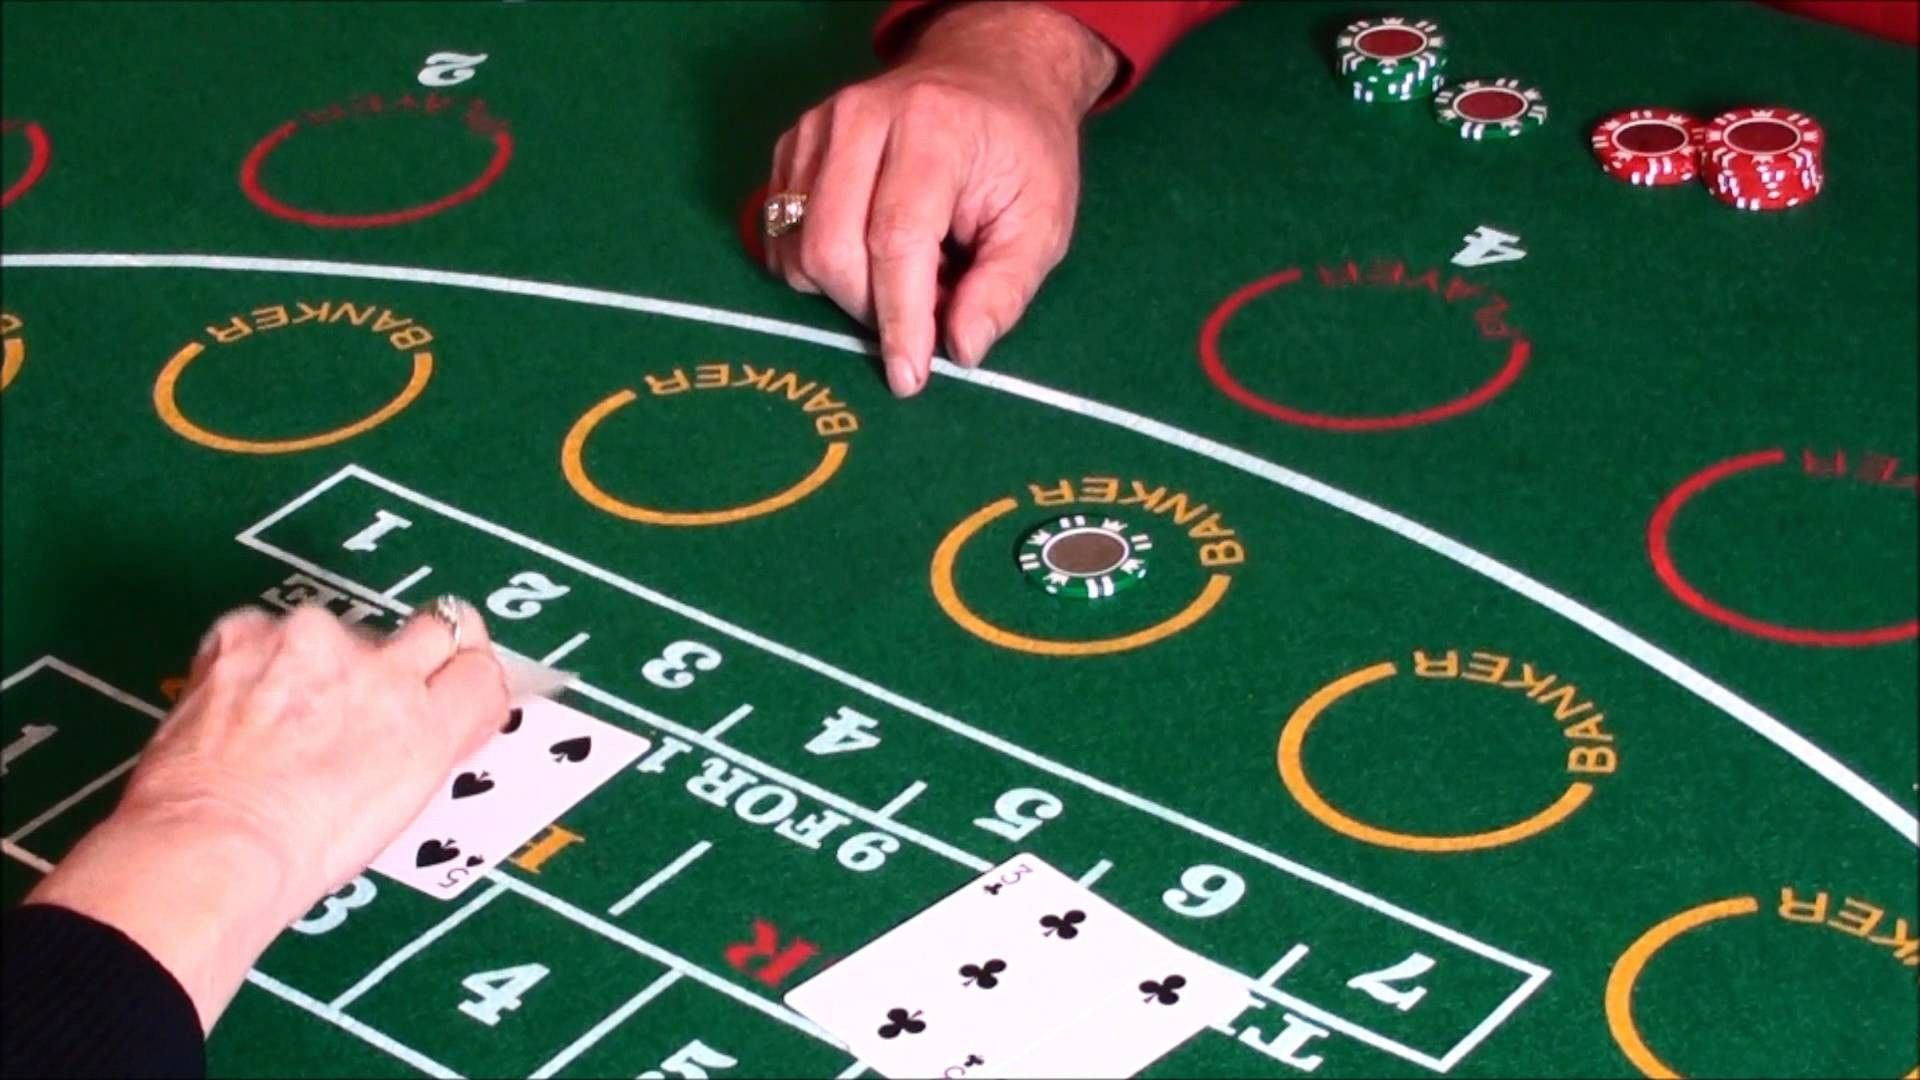 Online poker and why have the interest?